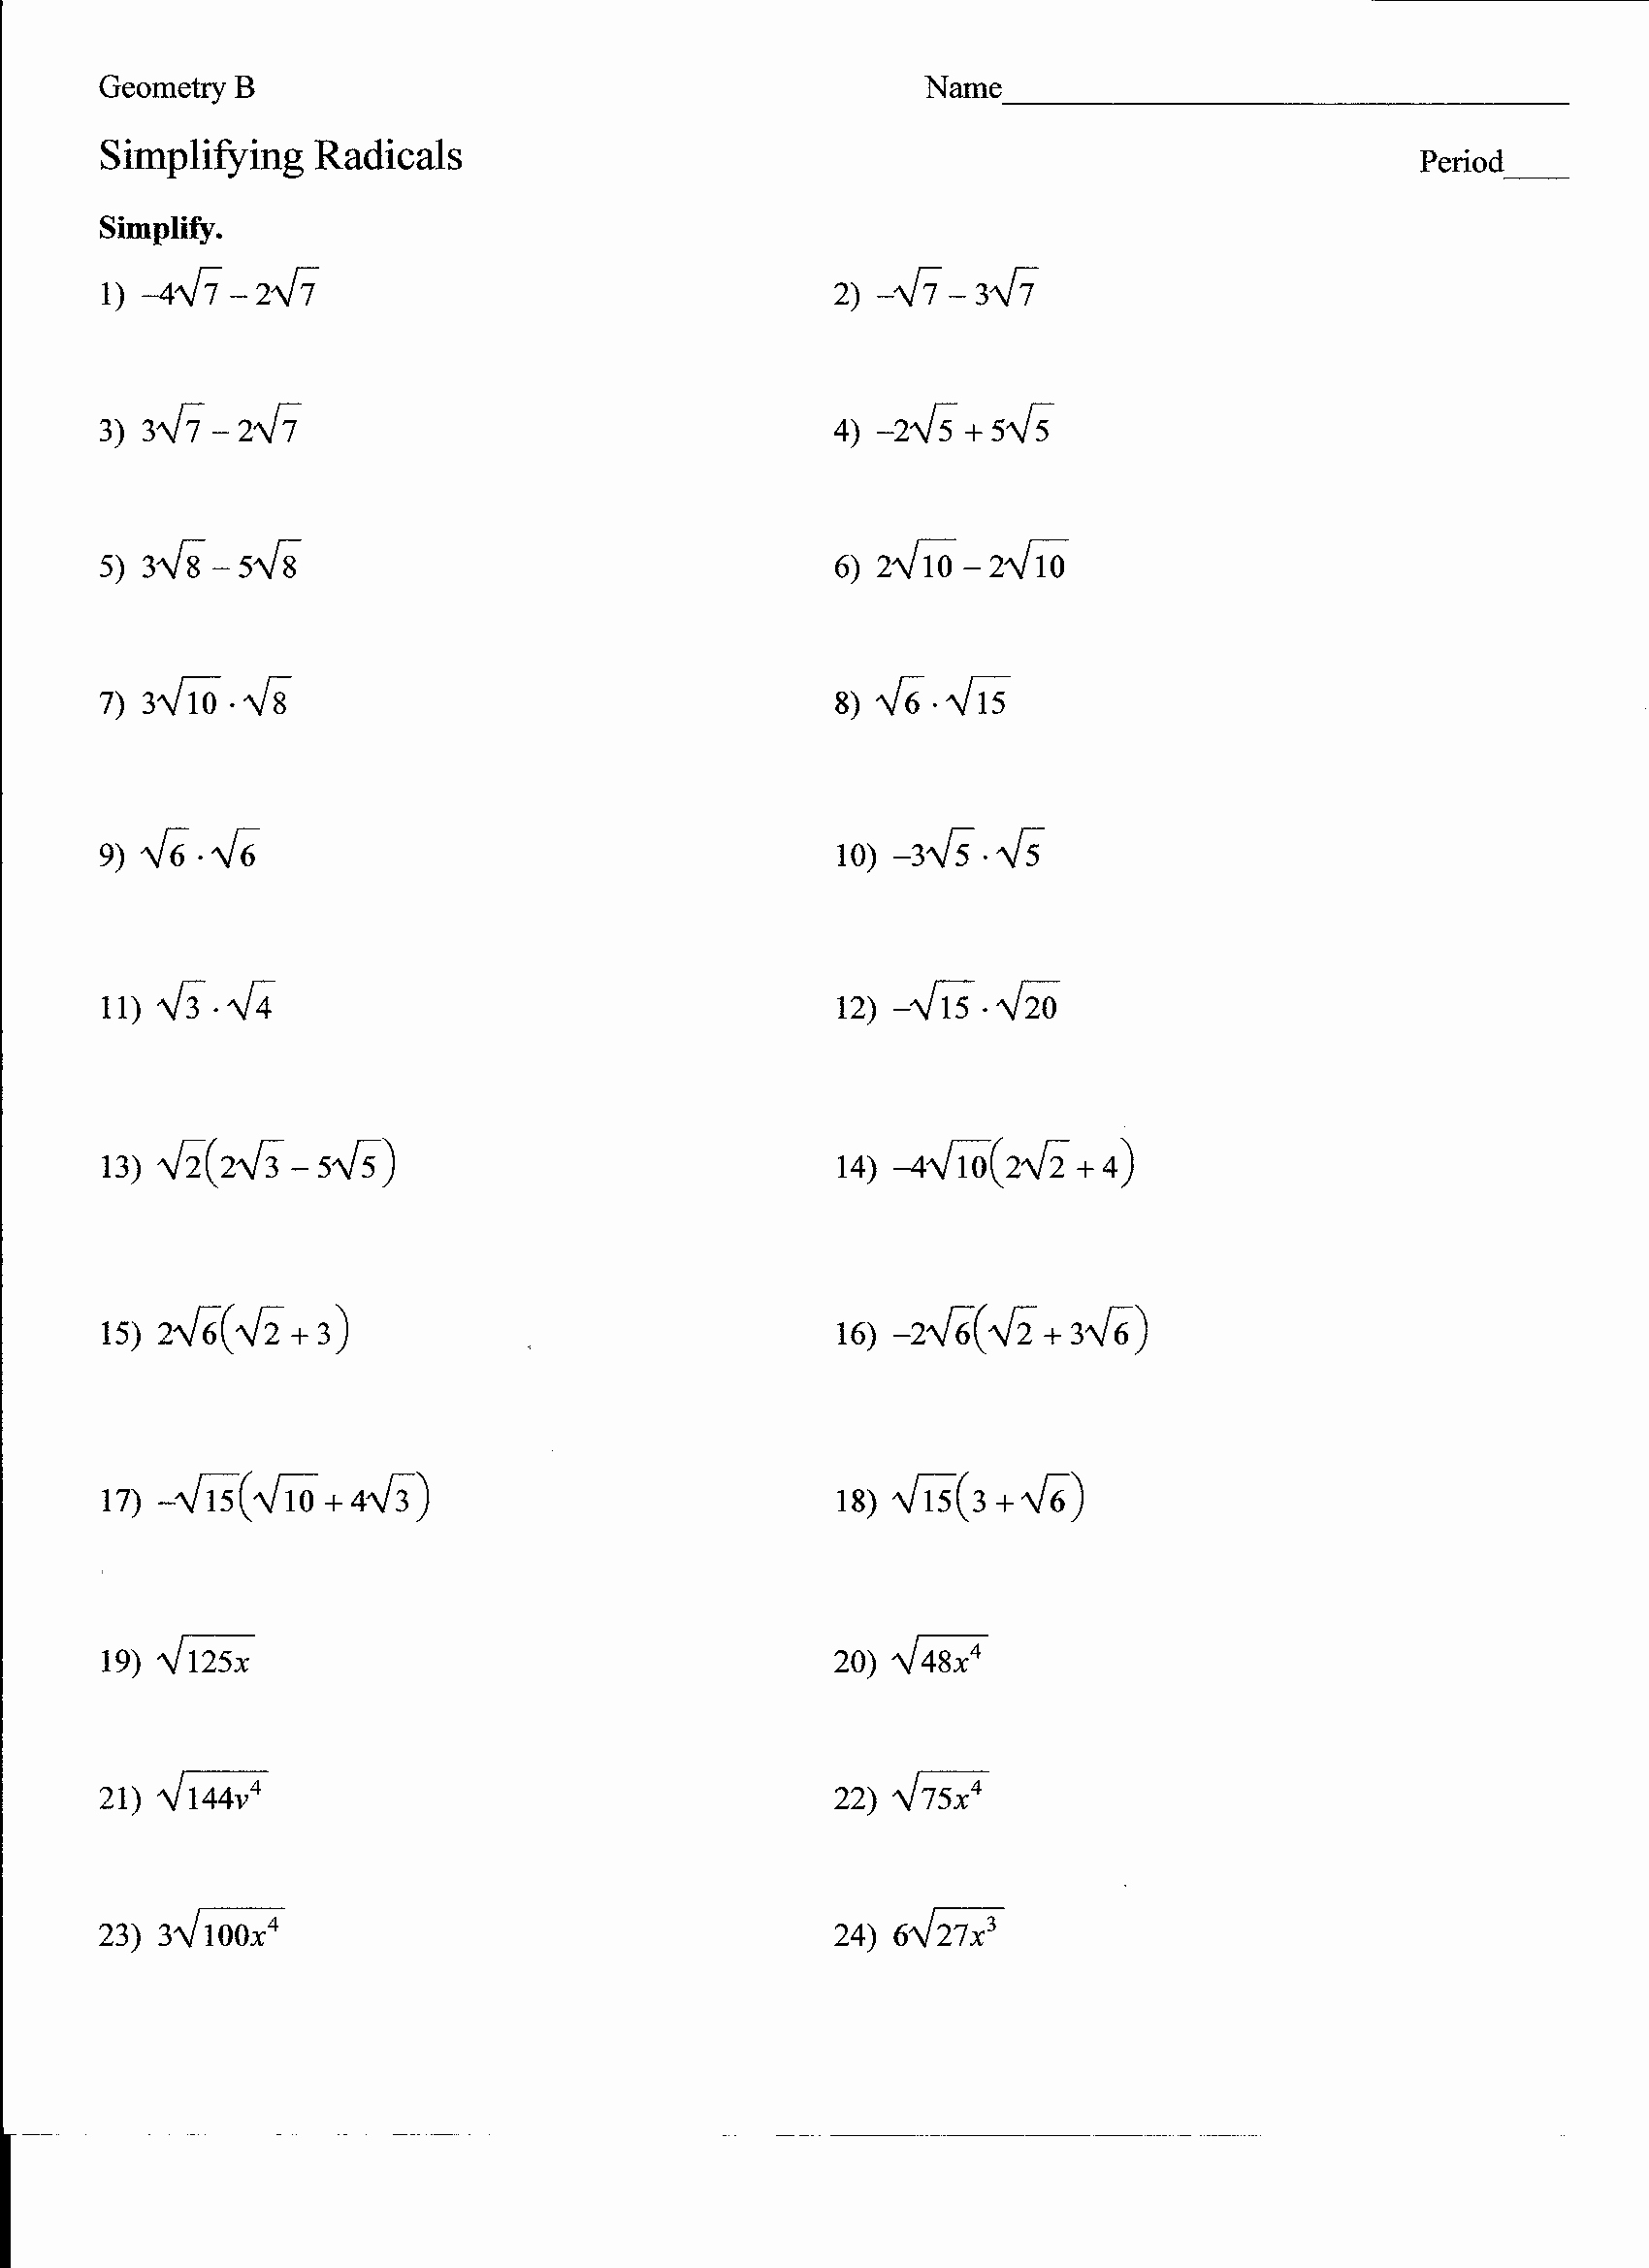 Simplifying Radicals Worksheet Algebra 1 Lovely 19 Best Of Multiplying and Dividing Radicals